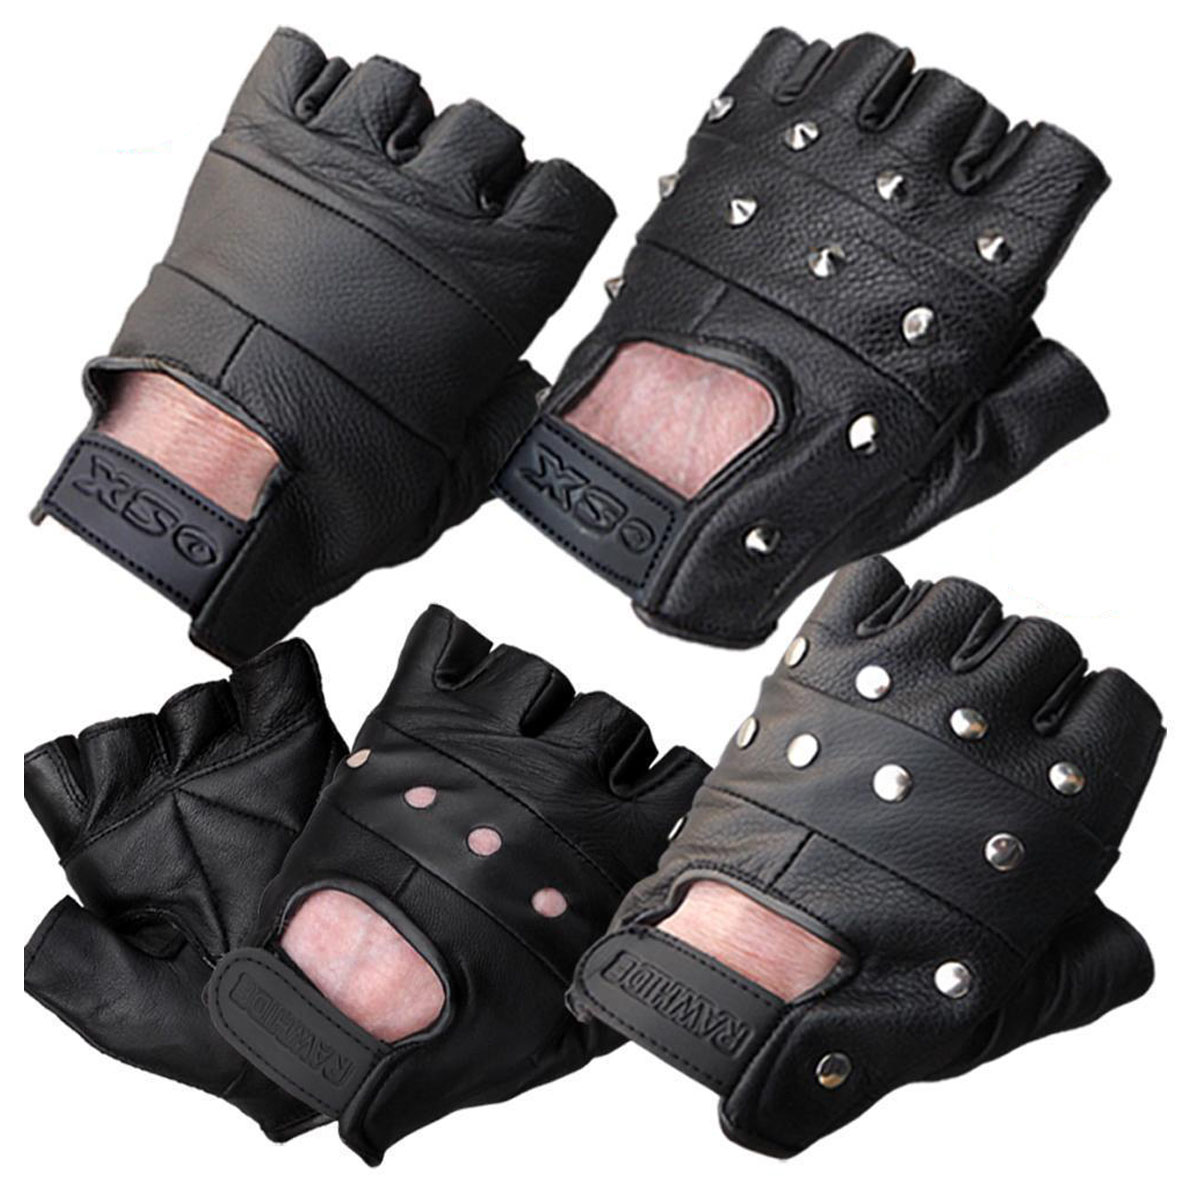 Driving gloves yahoo answers -  2 29